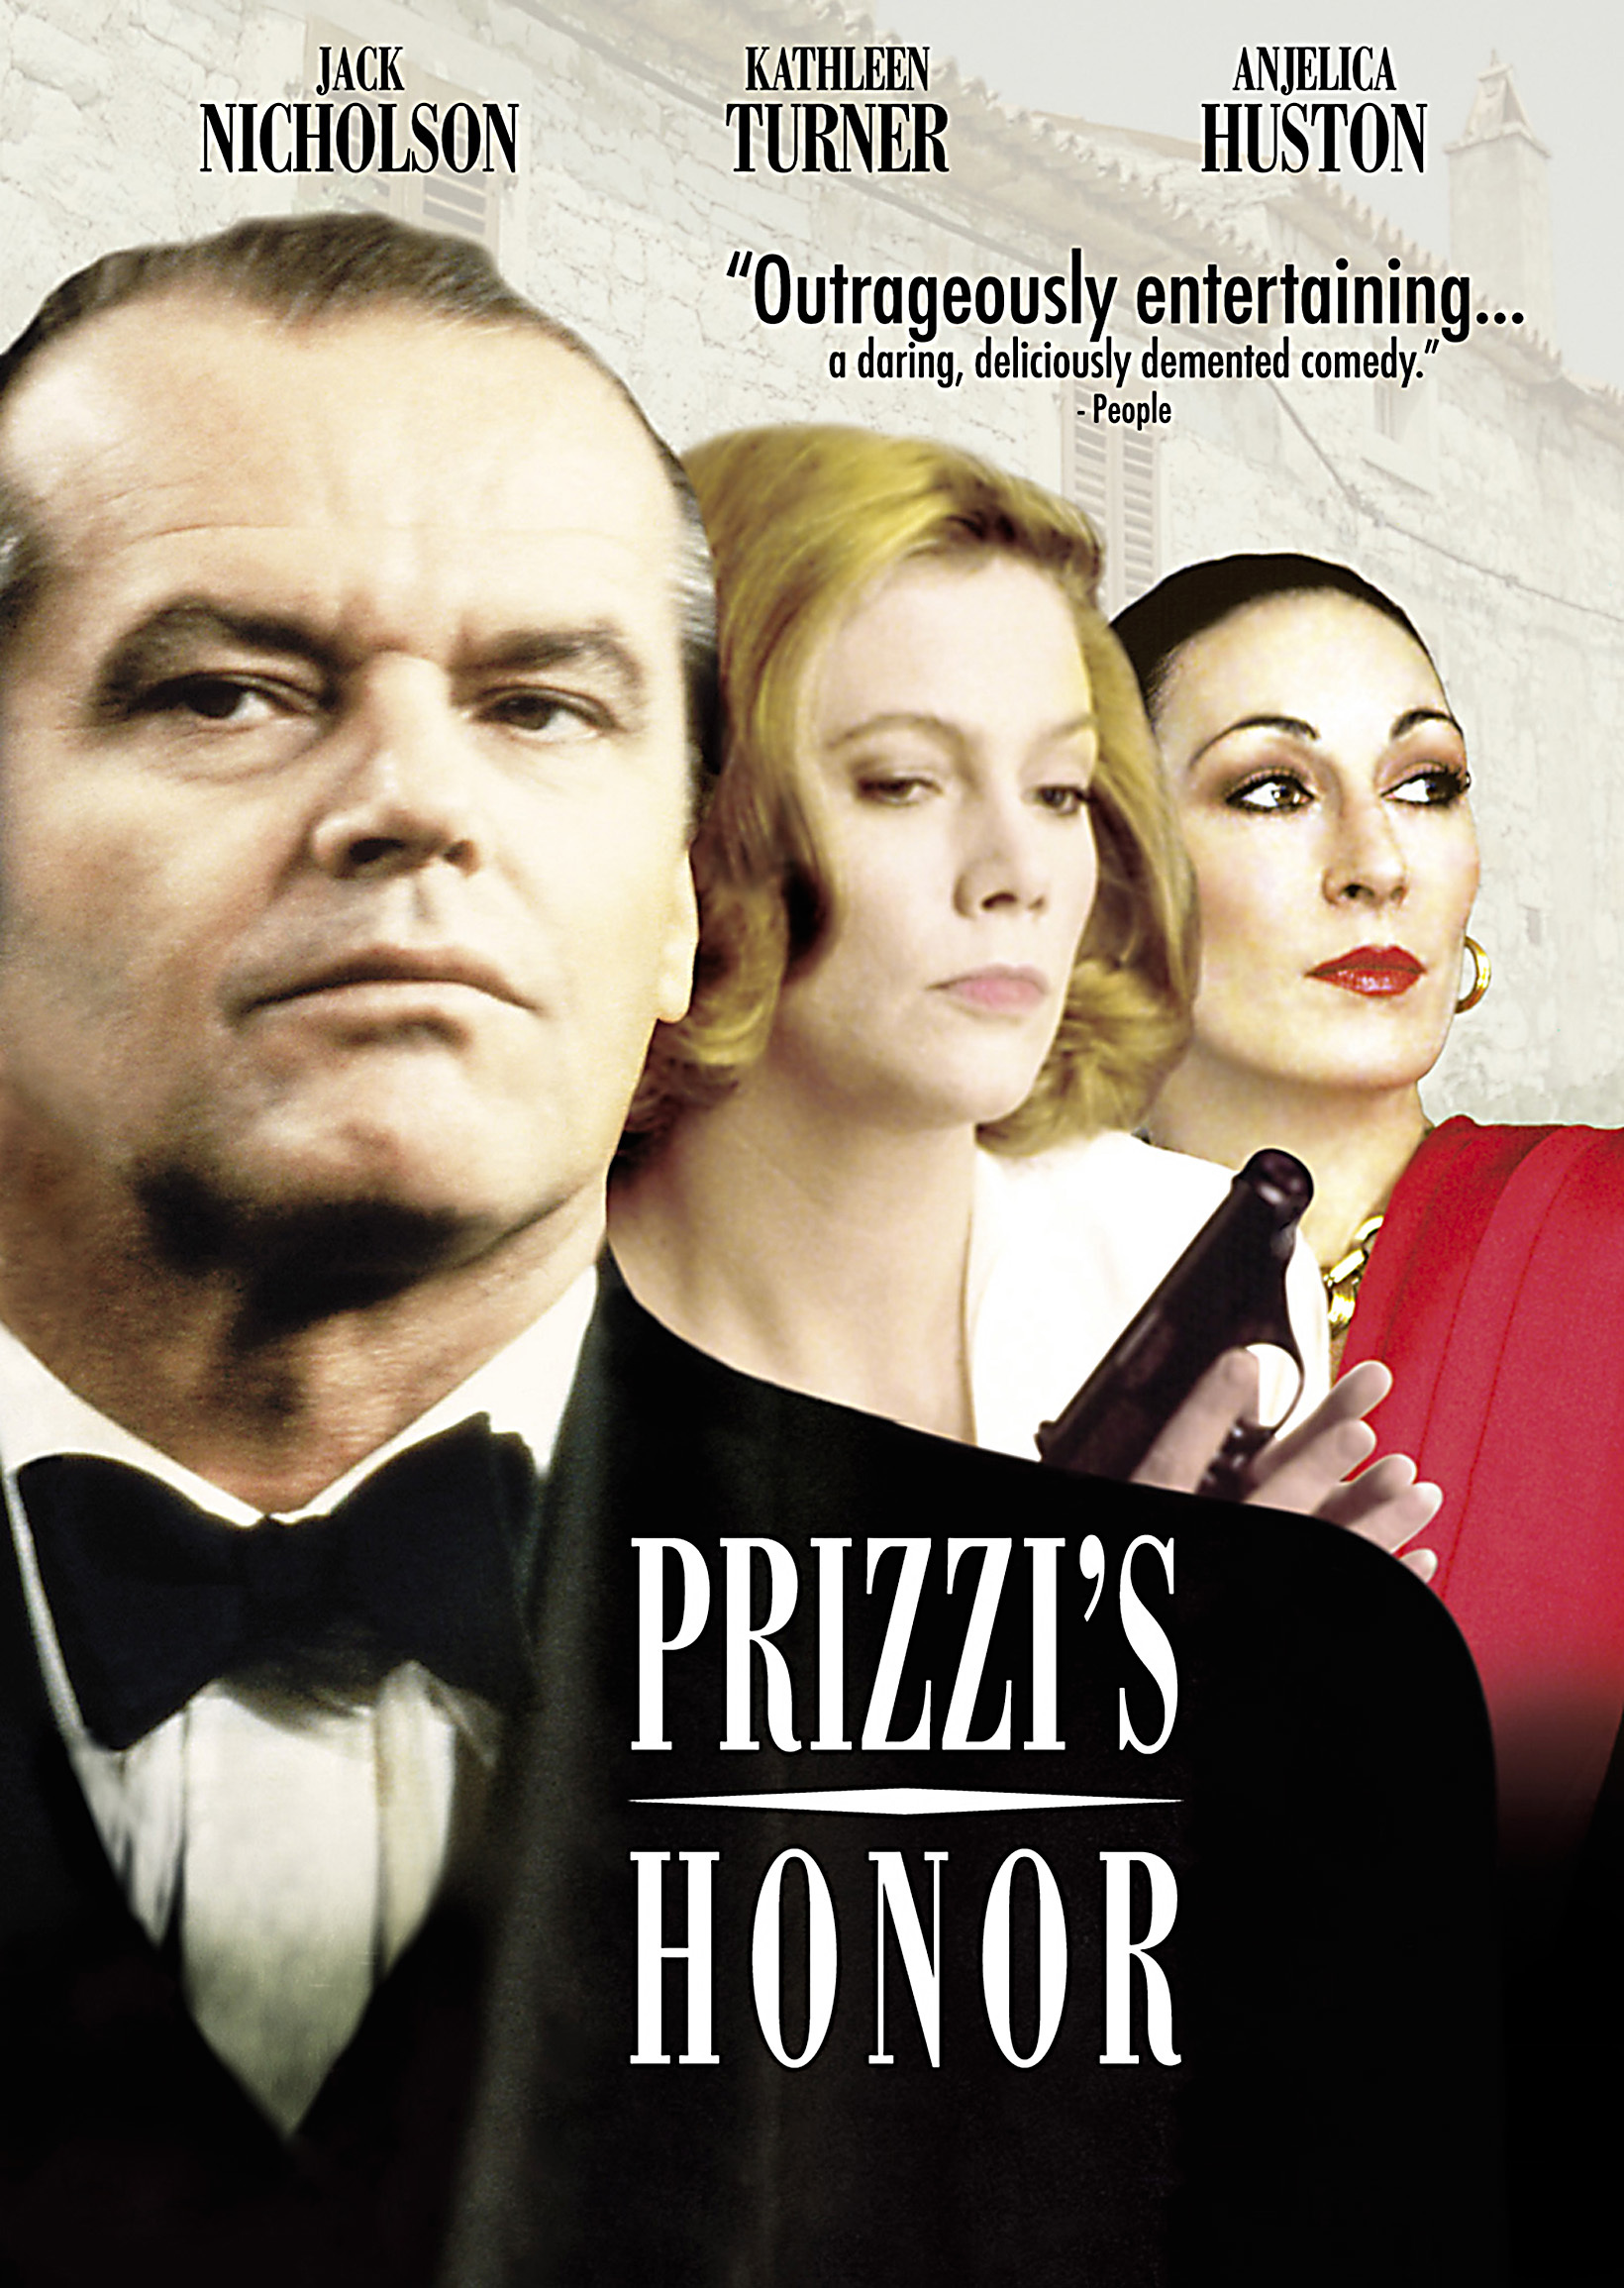 Prizzi's Honor DVD cover